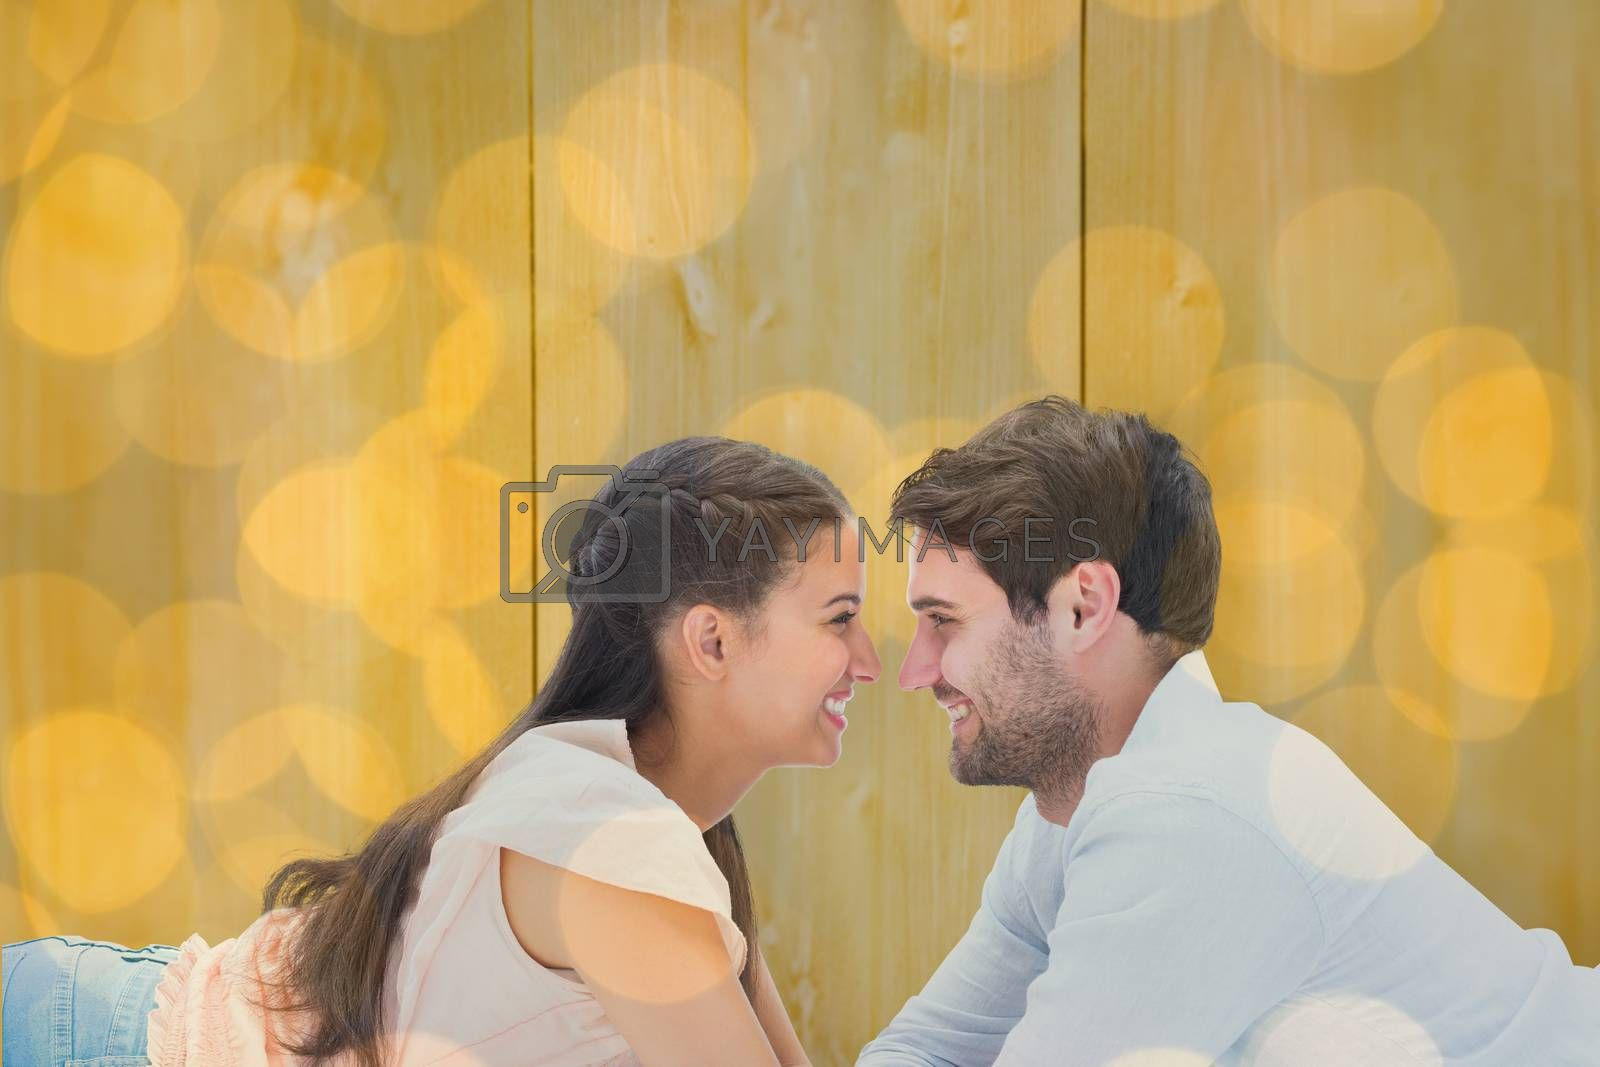 Attractive young couple smiling at each other against blurry yellow christmas light circles